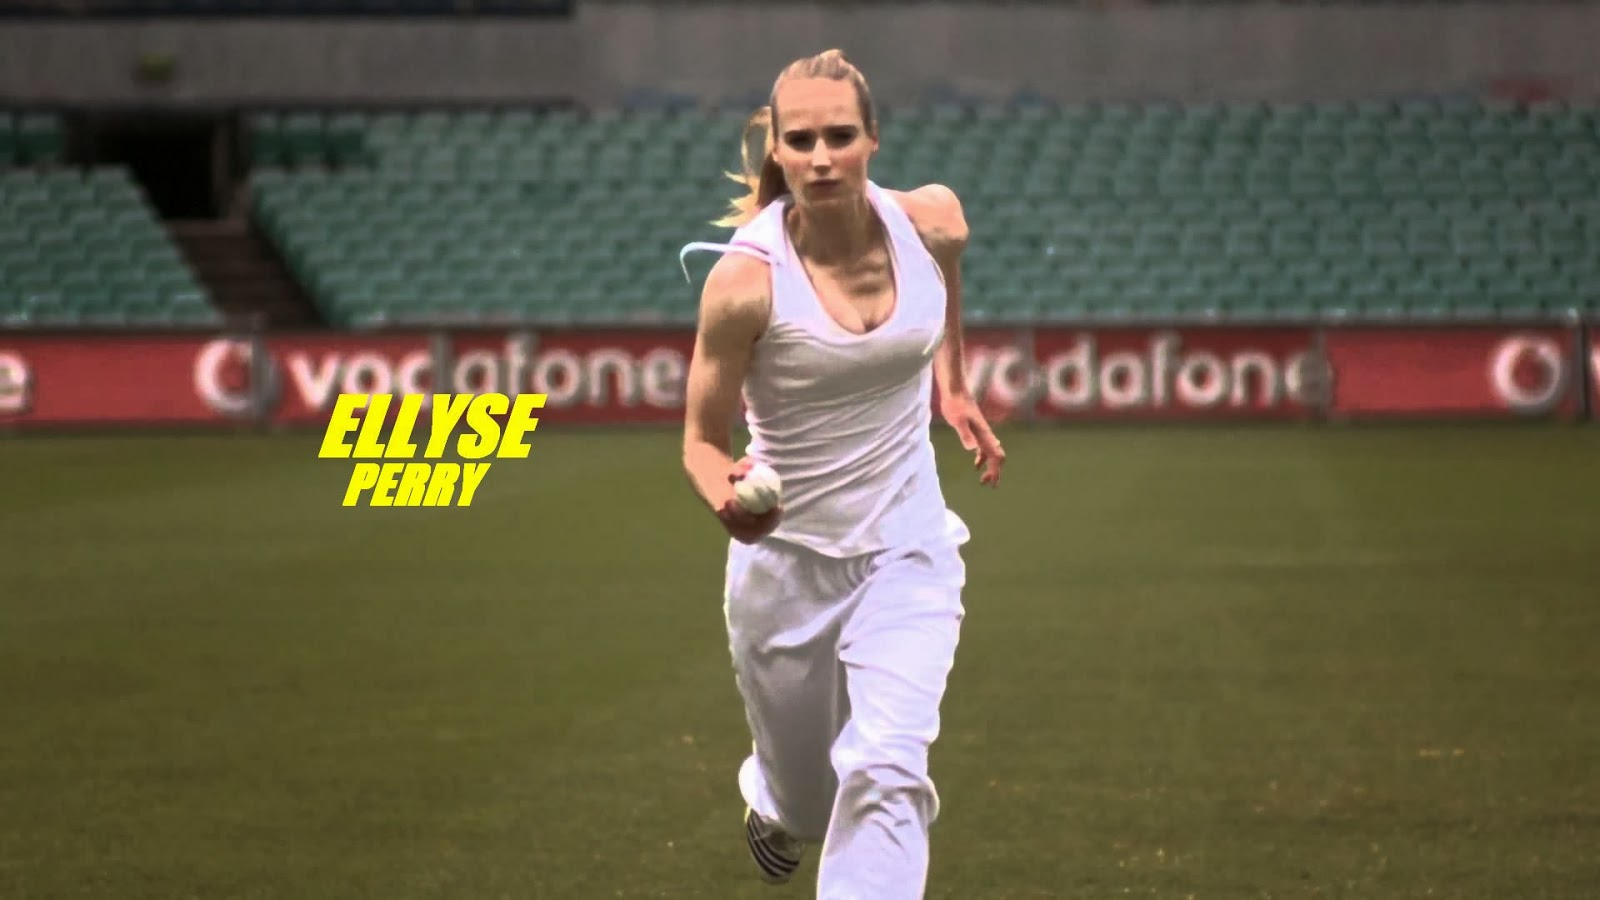 Ellyse Perry Wallpapers 2014